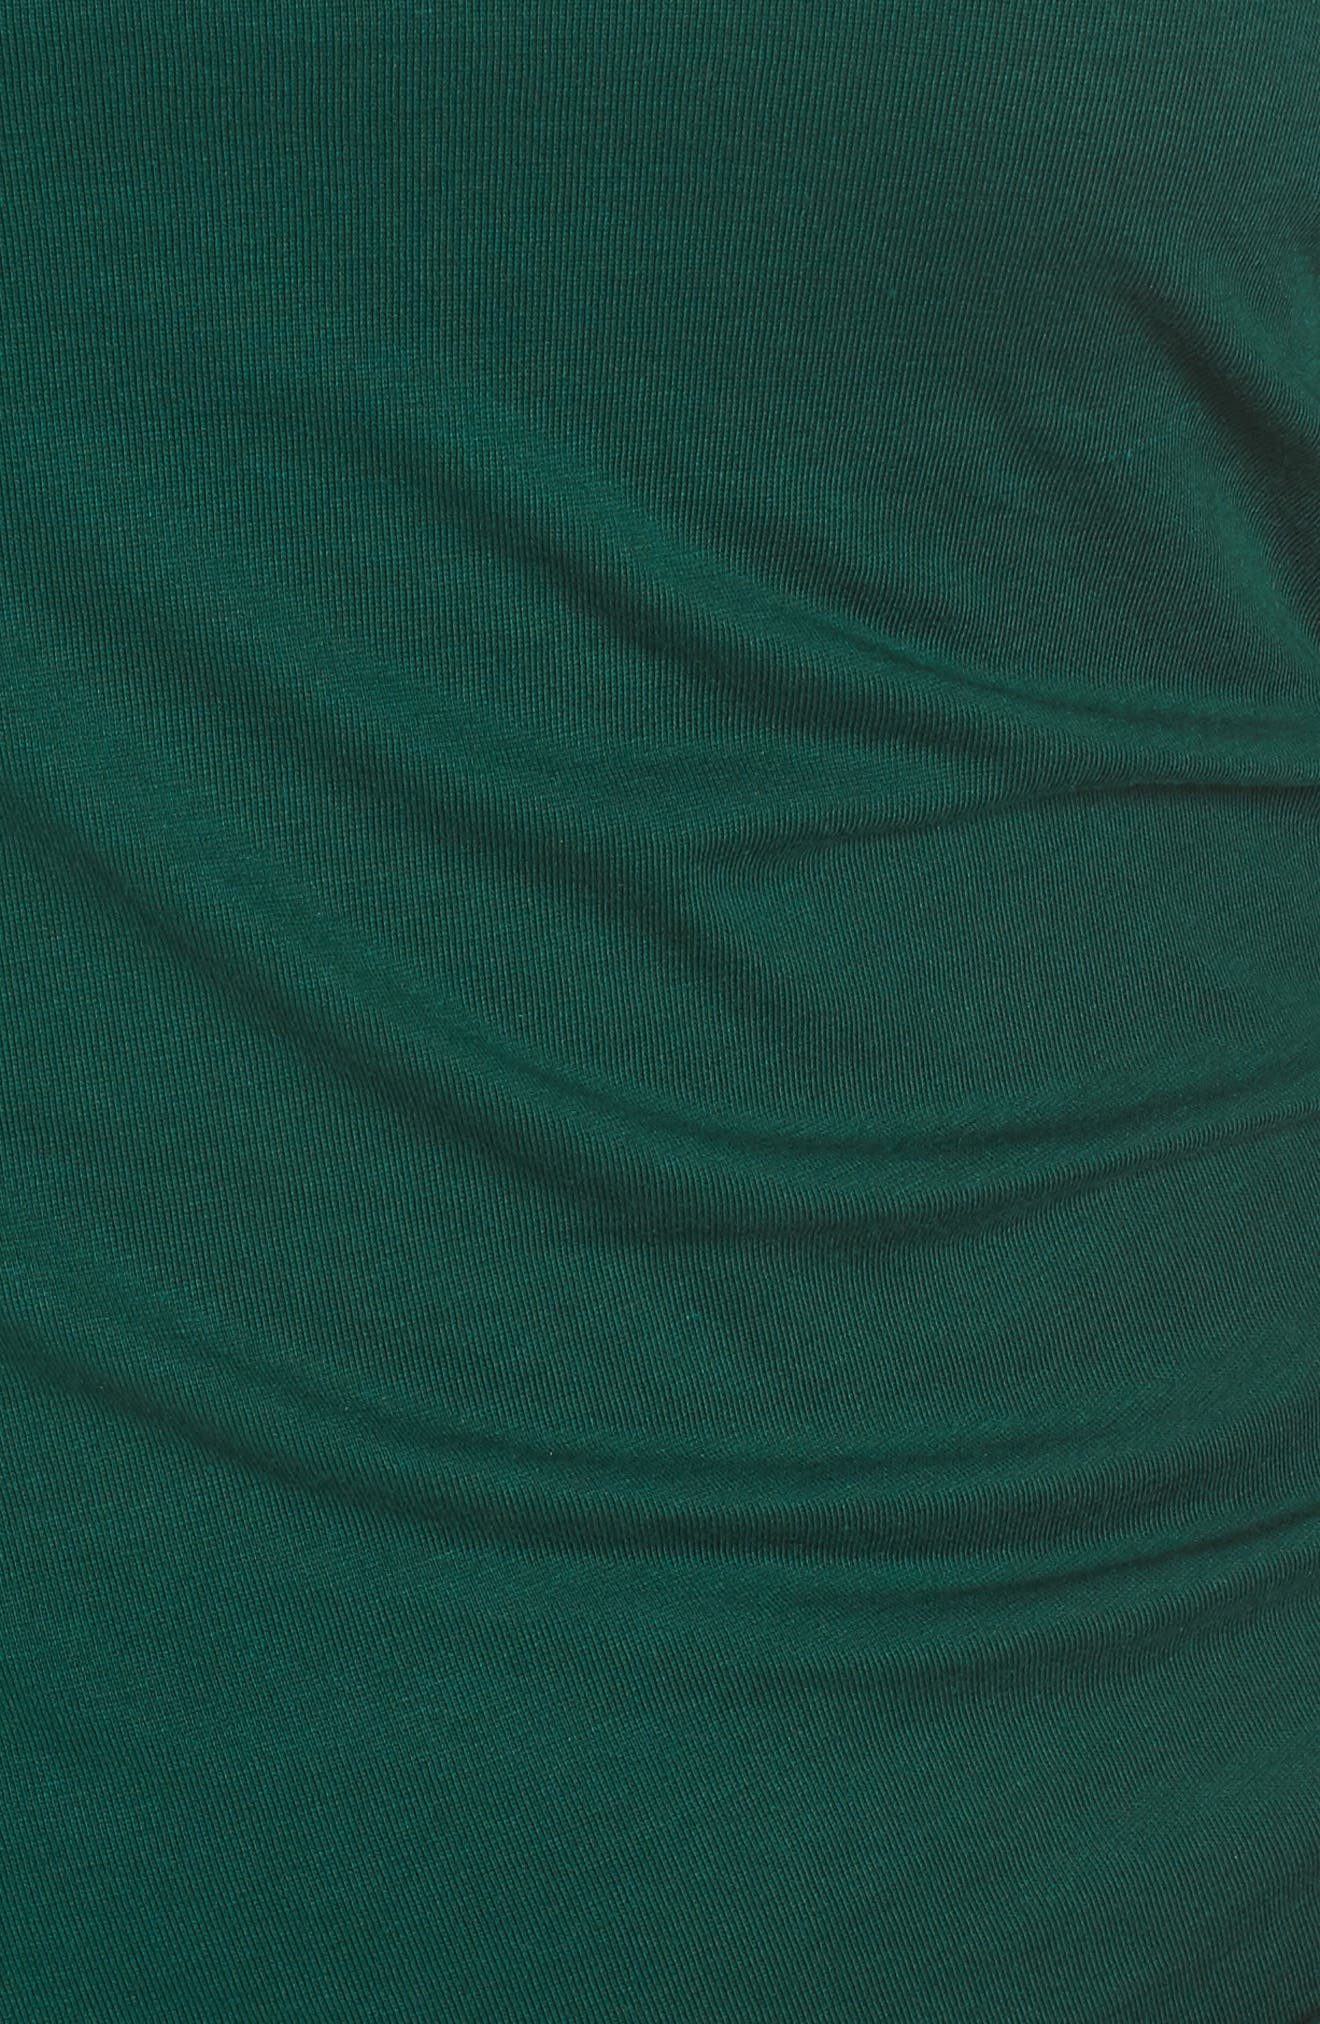 Ruched Body-Con Dress,                             Alternate thumbnail 6, color,                             GREEN BOTANICAL